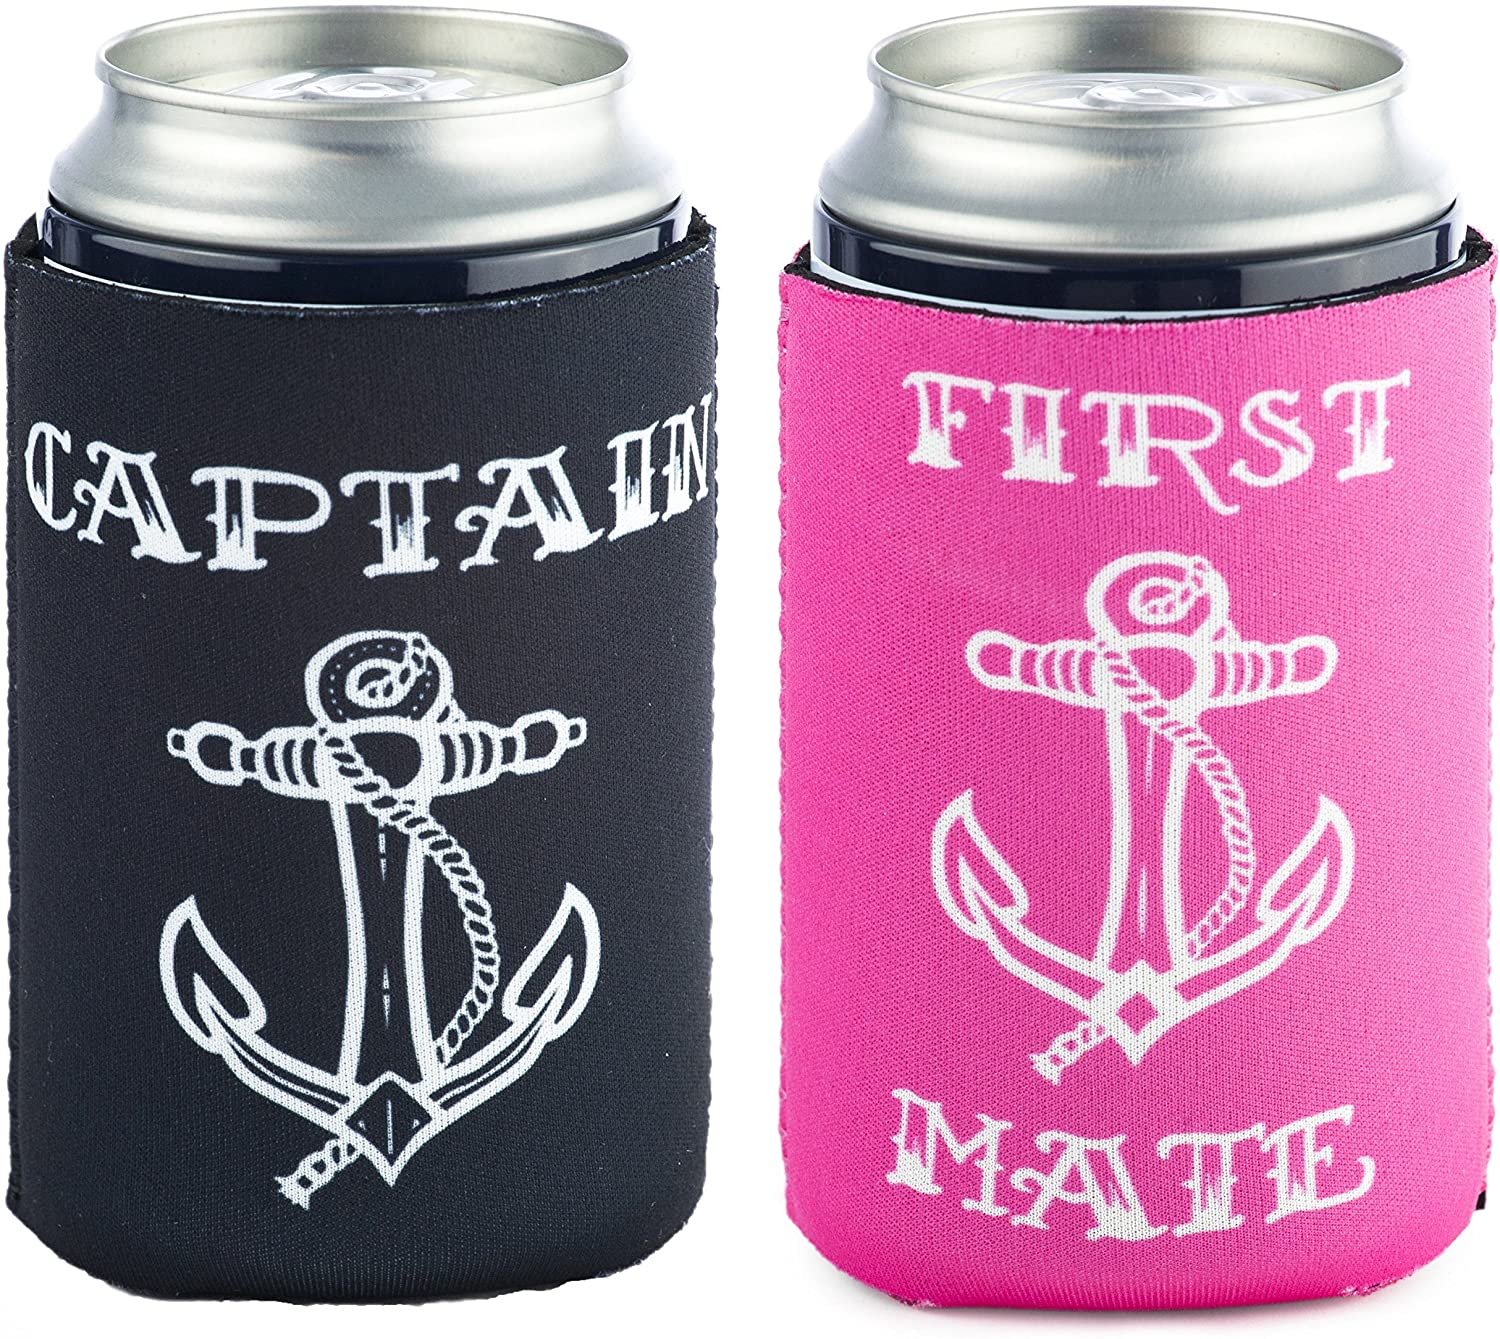 Funny Guy Mugs 2 PACK: Captain/First Mate Collapsible Neoprene Can Coolies - Ship's Wheel on Bottom